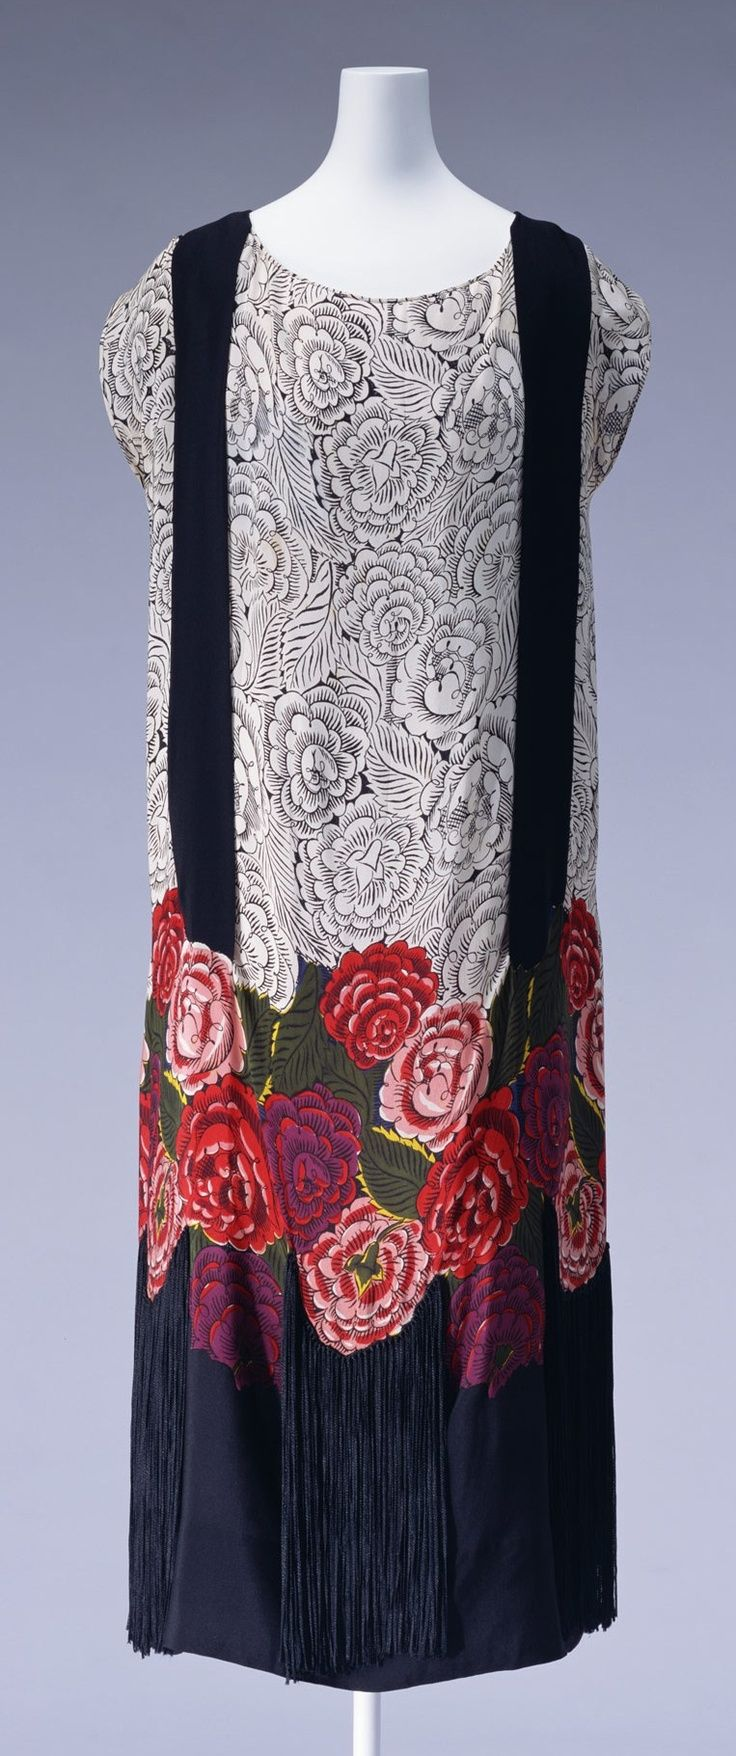 Silk Crepe Dress with Rayon Fringe, ca. 1922Textile designed by painter Raoul Dufy for textile manufacturer Bianchini-FerrierDress designed and created by Zimmermannvia KCI